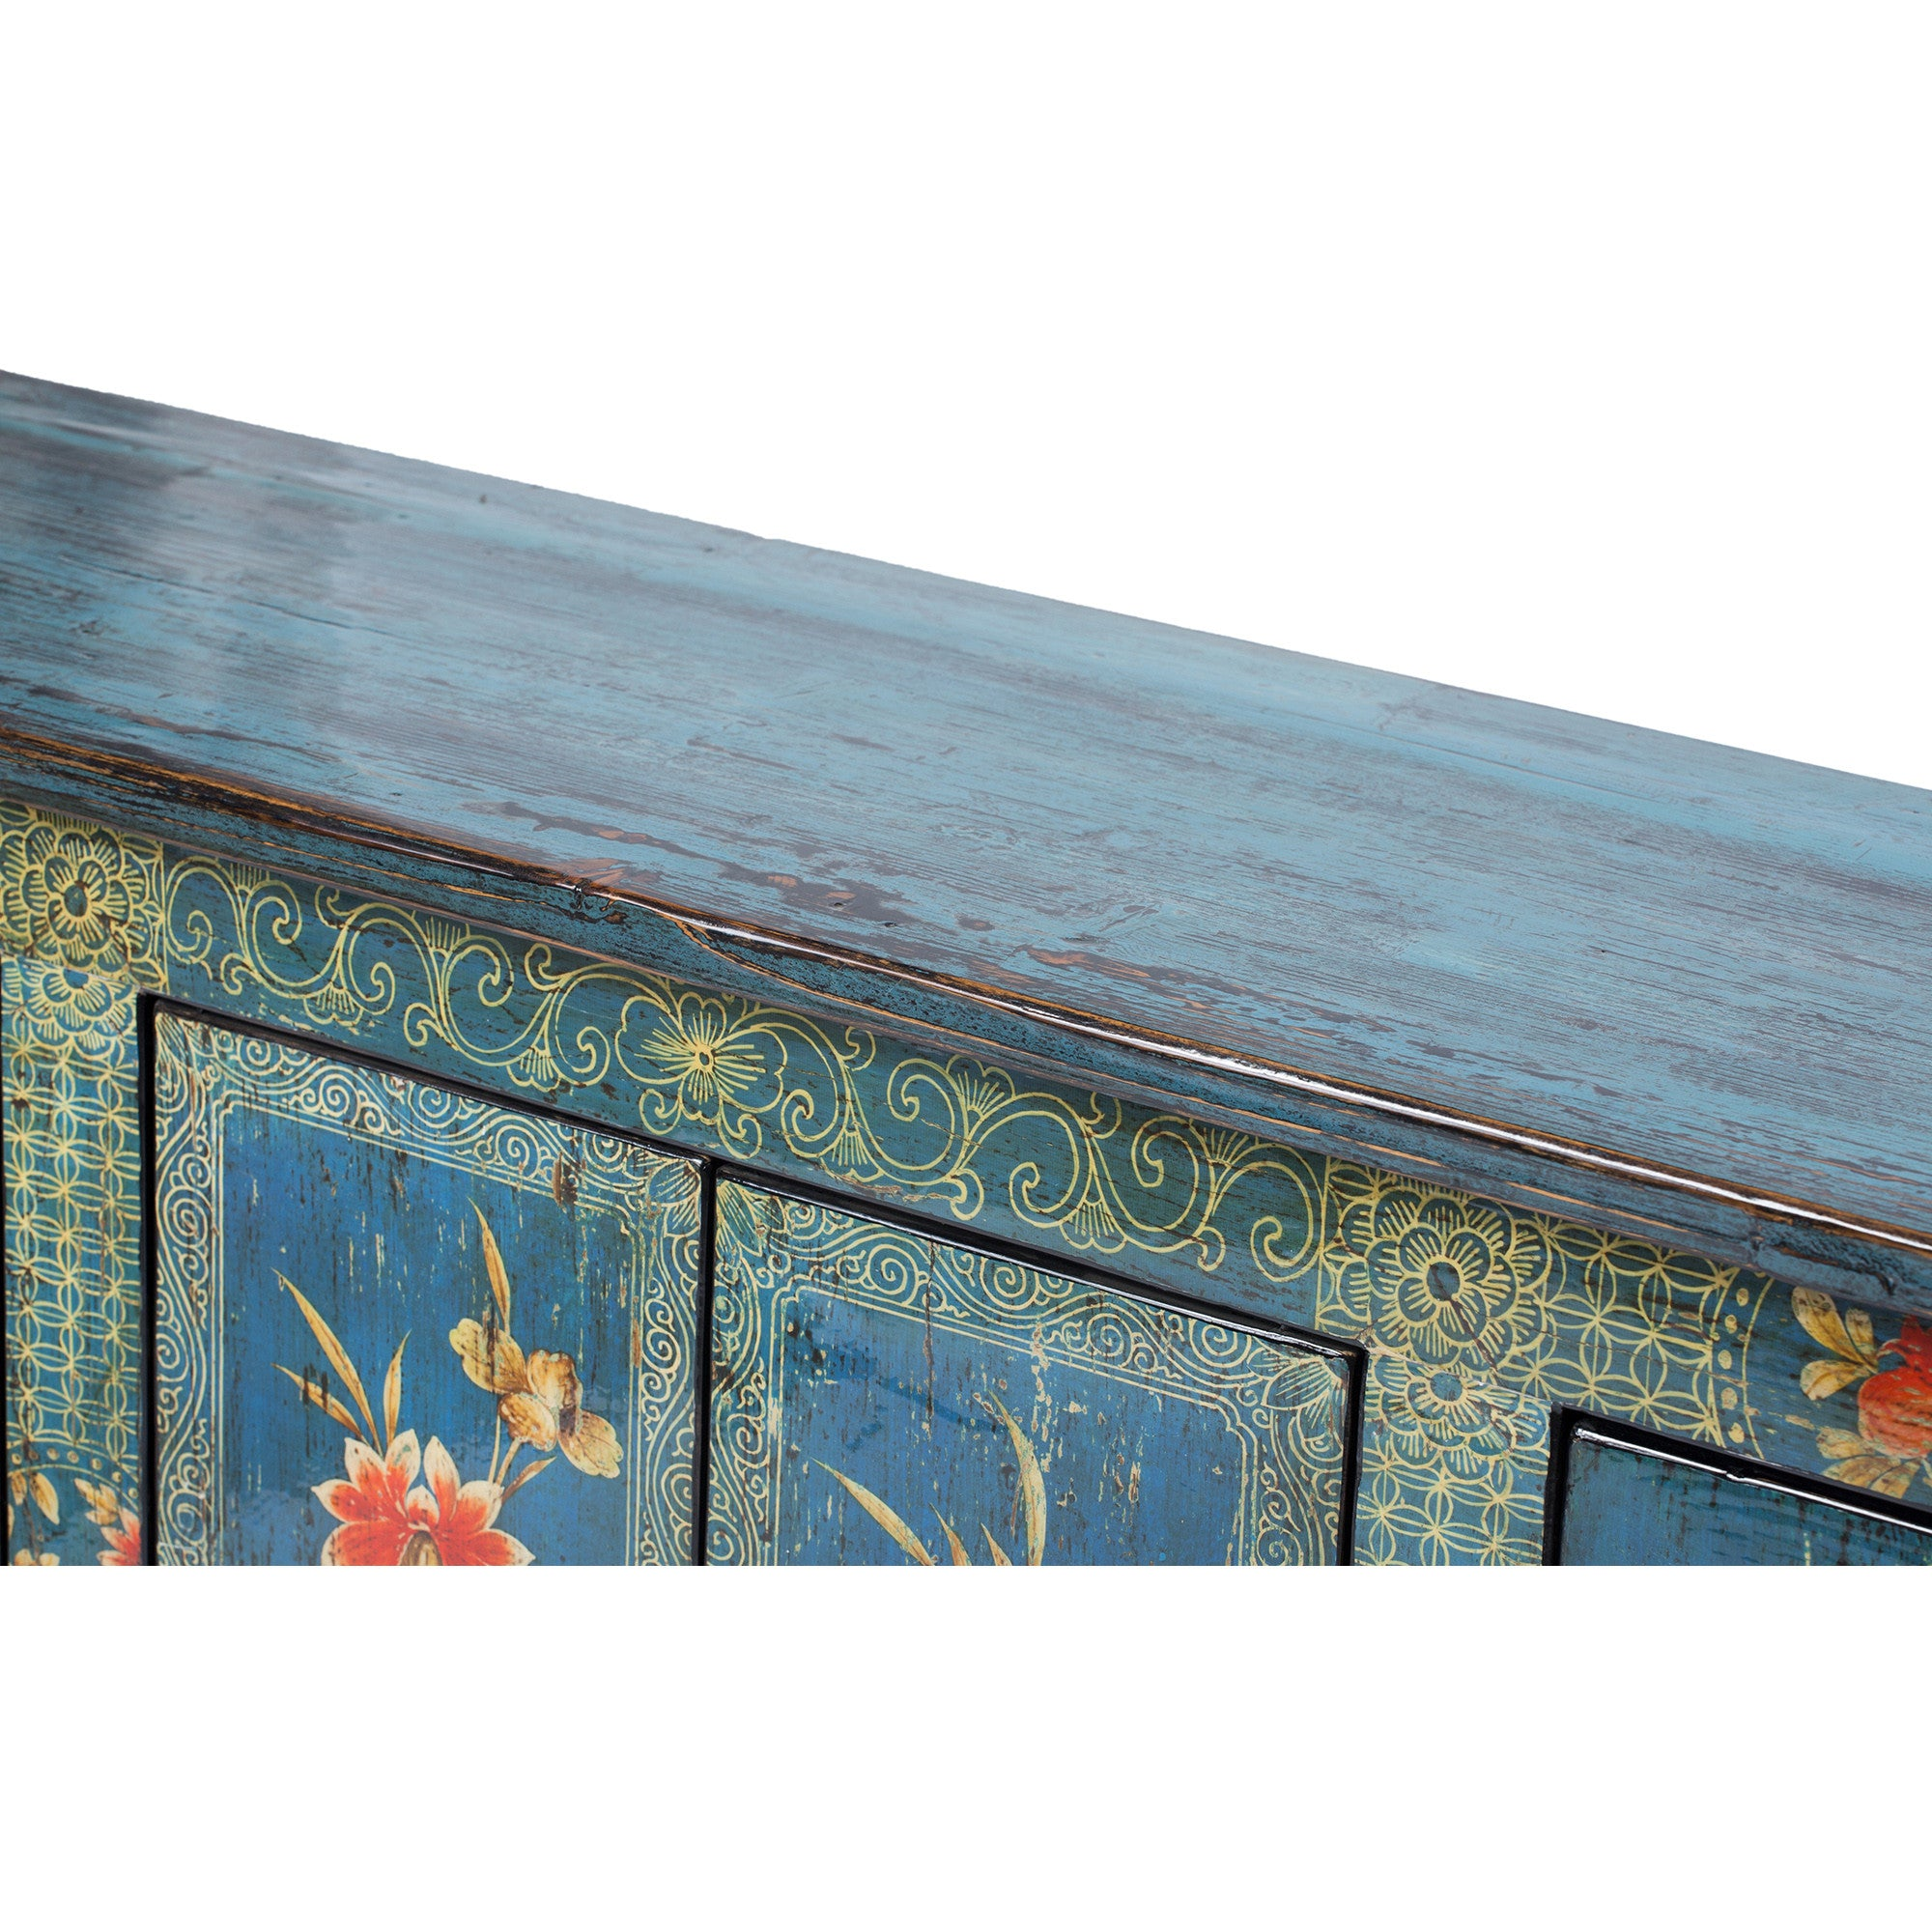 Contemporary Painted Blue Chinese Cabinet surface detail